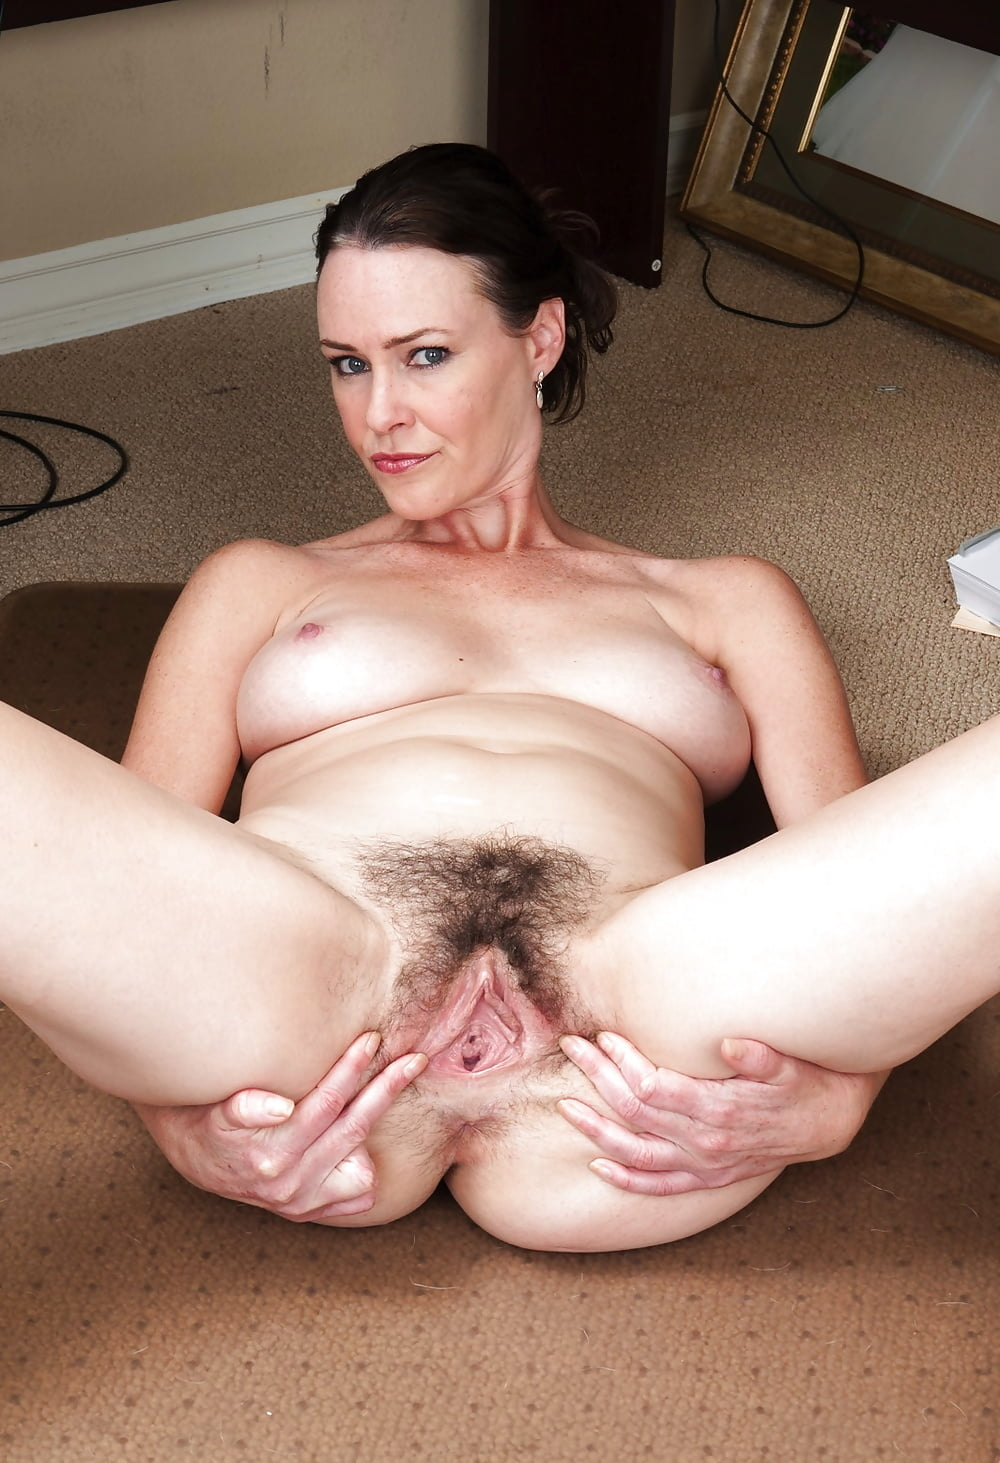 milf-hairy-pussy-being-shaved